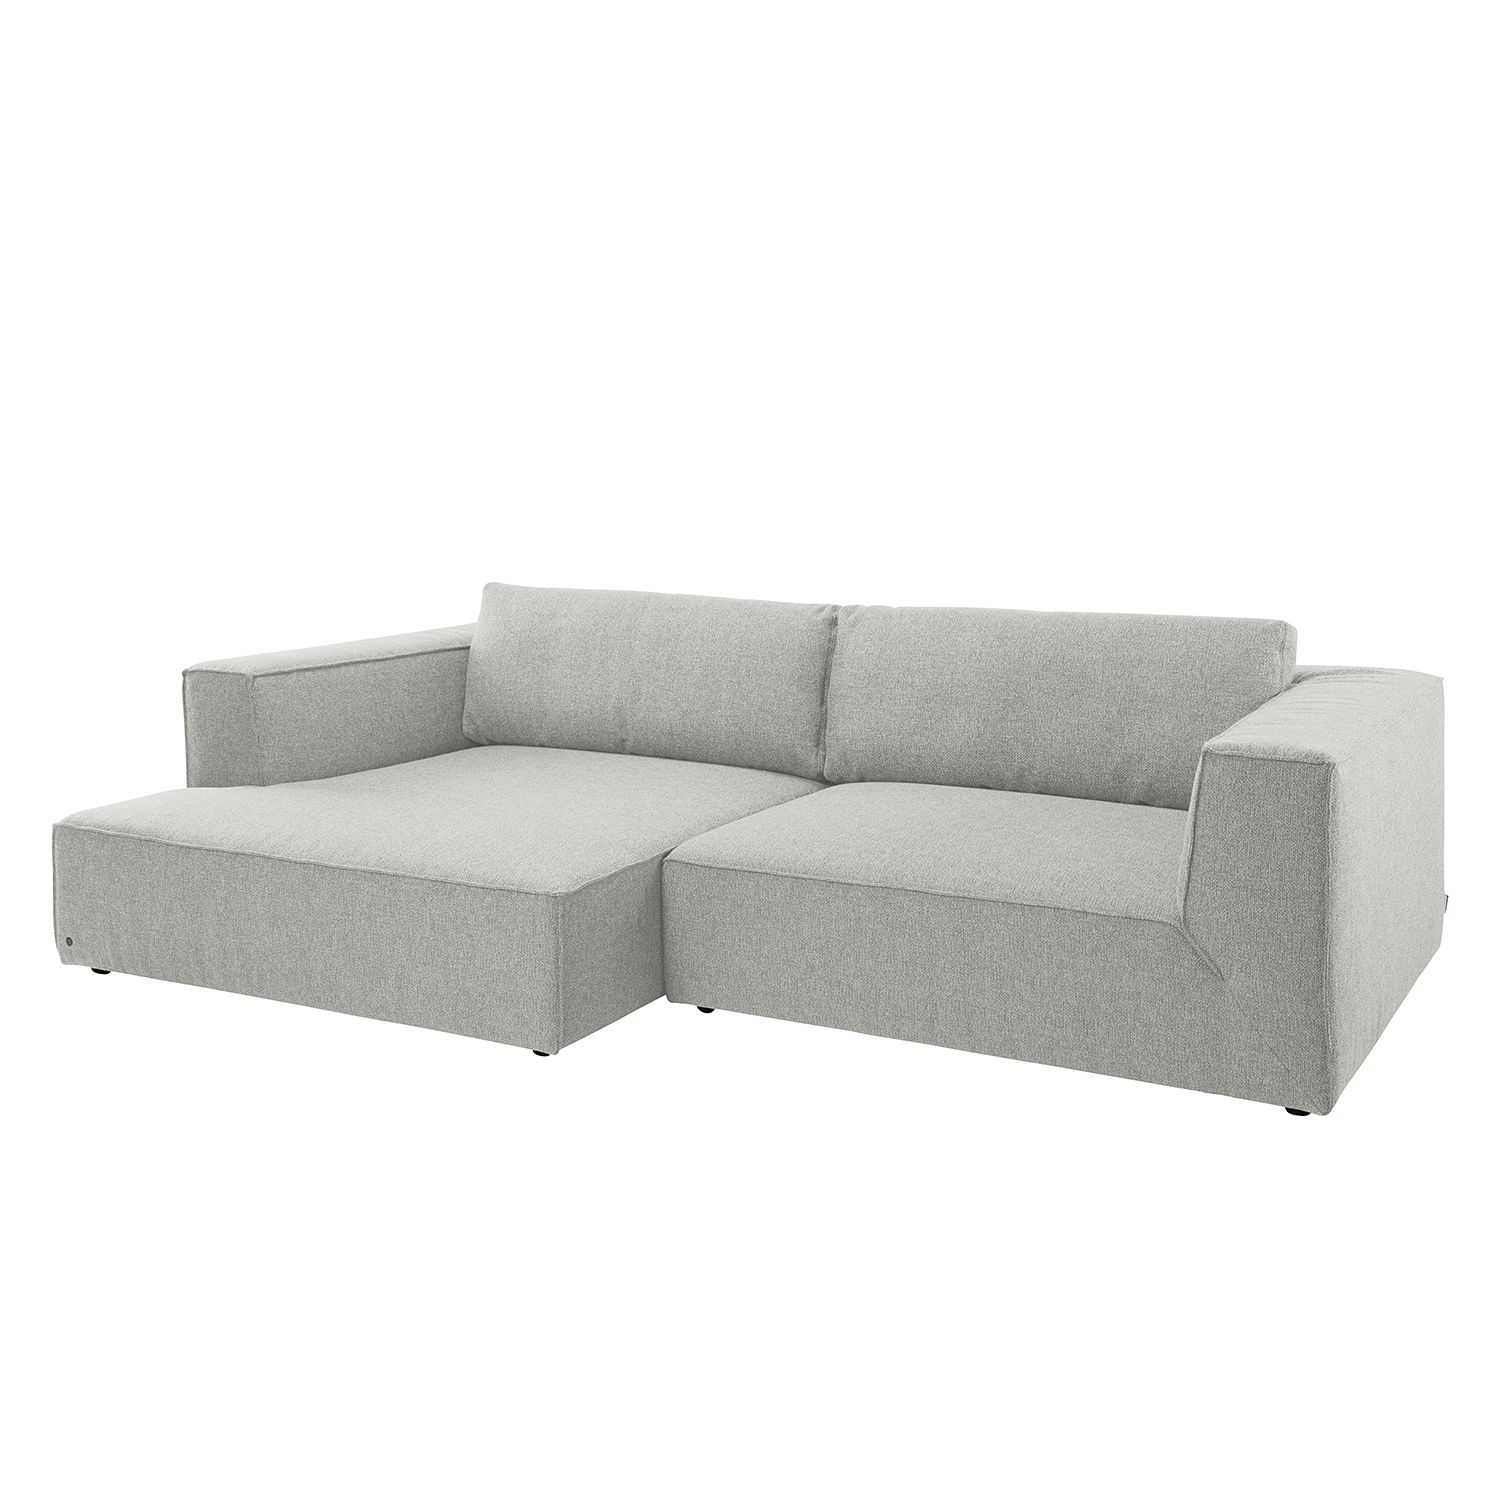 Ecksofa Big Cube Style Webstoff - Longchair davorstehend links - Stoff TBO39 powder grey, Tom Tailor